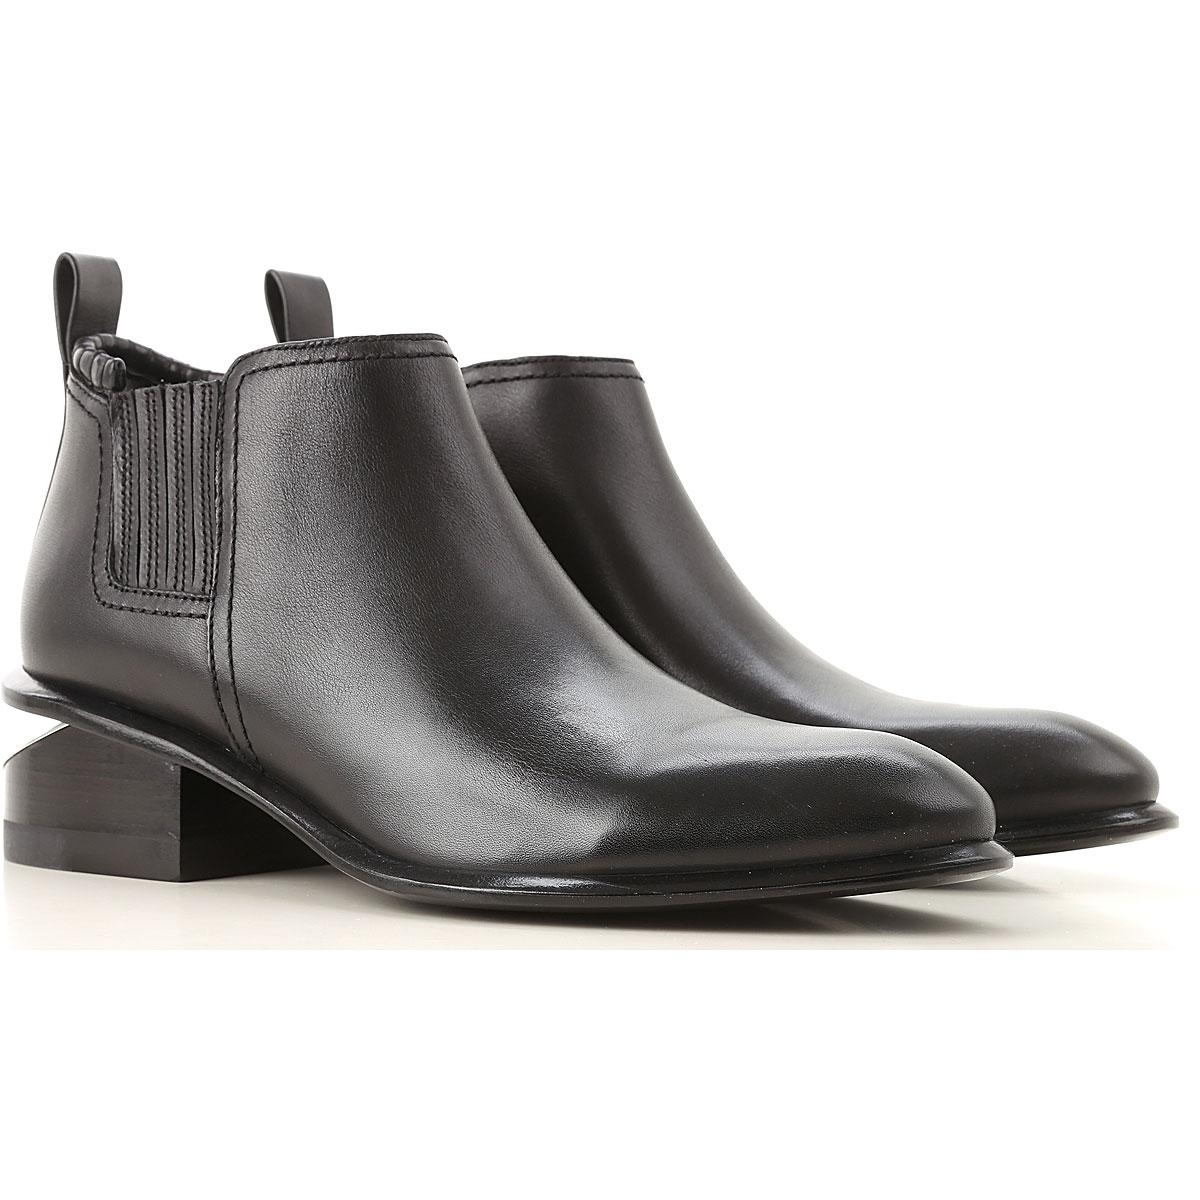 Alexander Wang Boots for Women, Booties On Sale, Black, Leather, 2019, 11 6 8.5 9